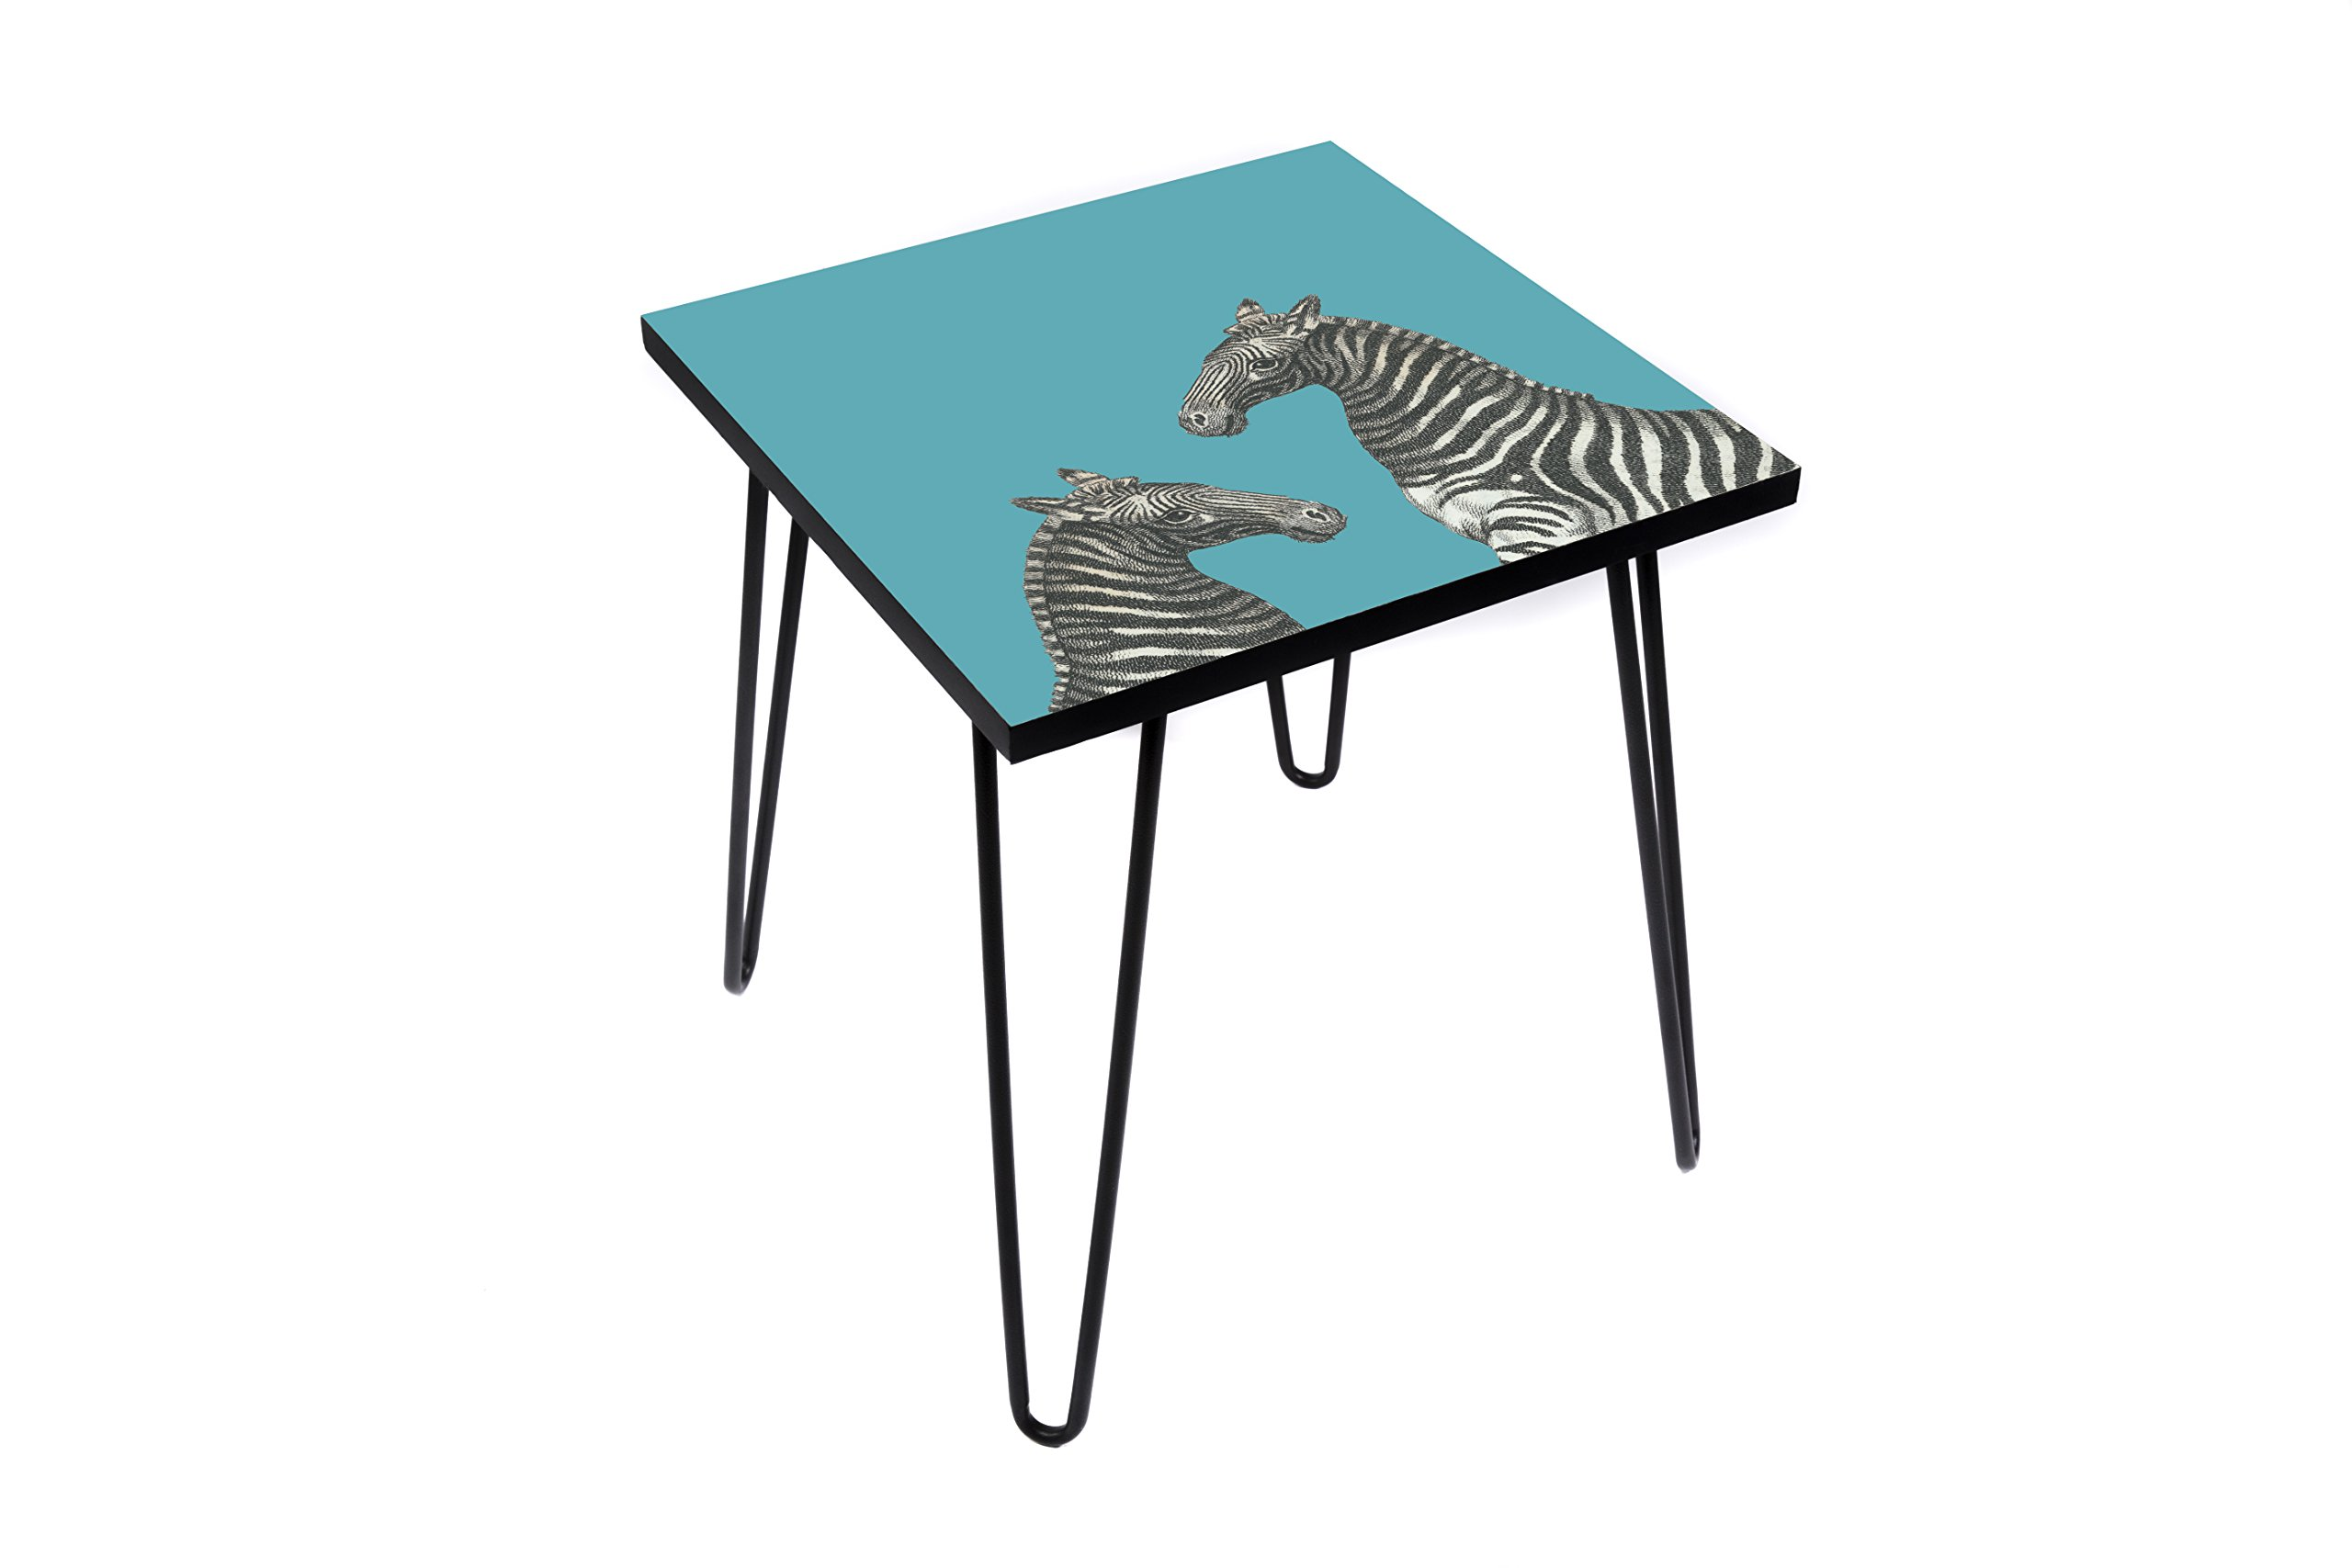 Wood End Table with Digital Print by LAMOU-Baltic Birch with Zebra Print-Steel Hairpin Legs-20''x20''